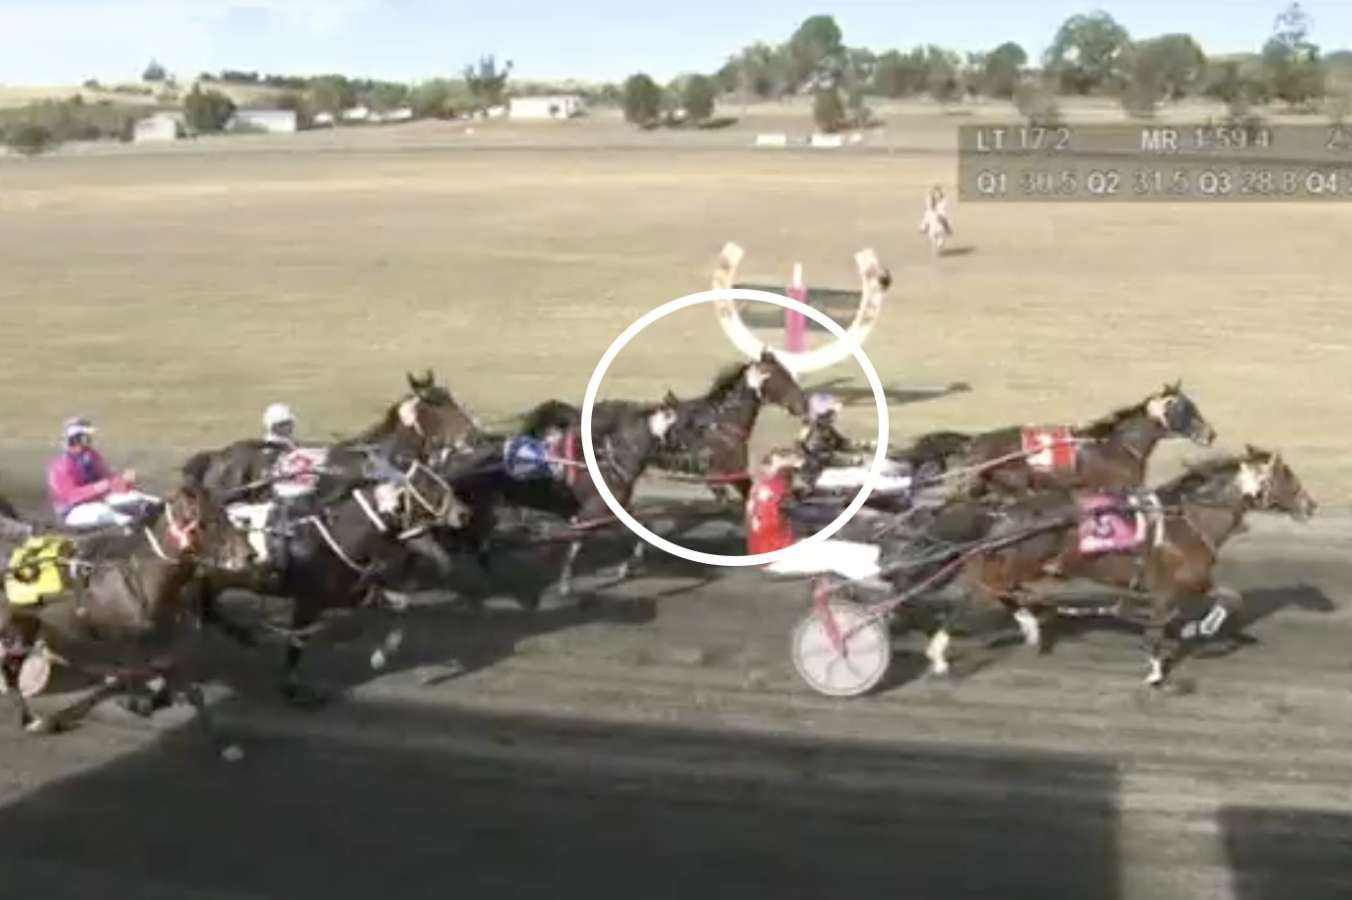 Rancho Man on the inside was third across the line